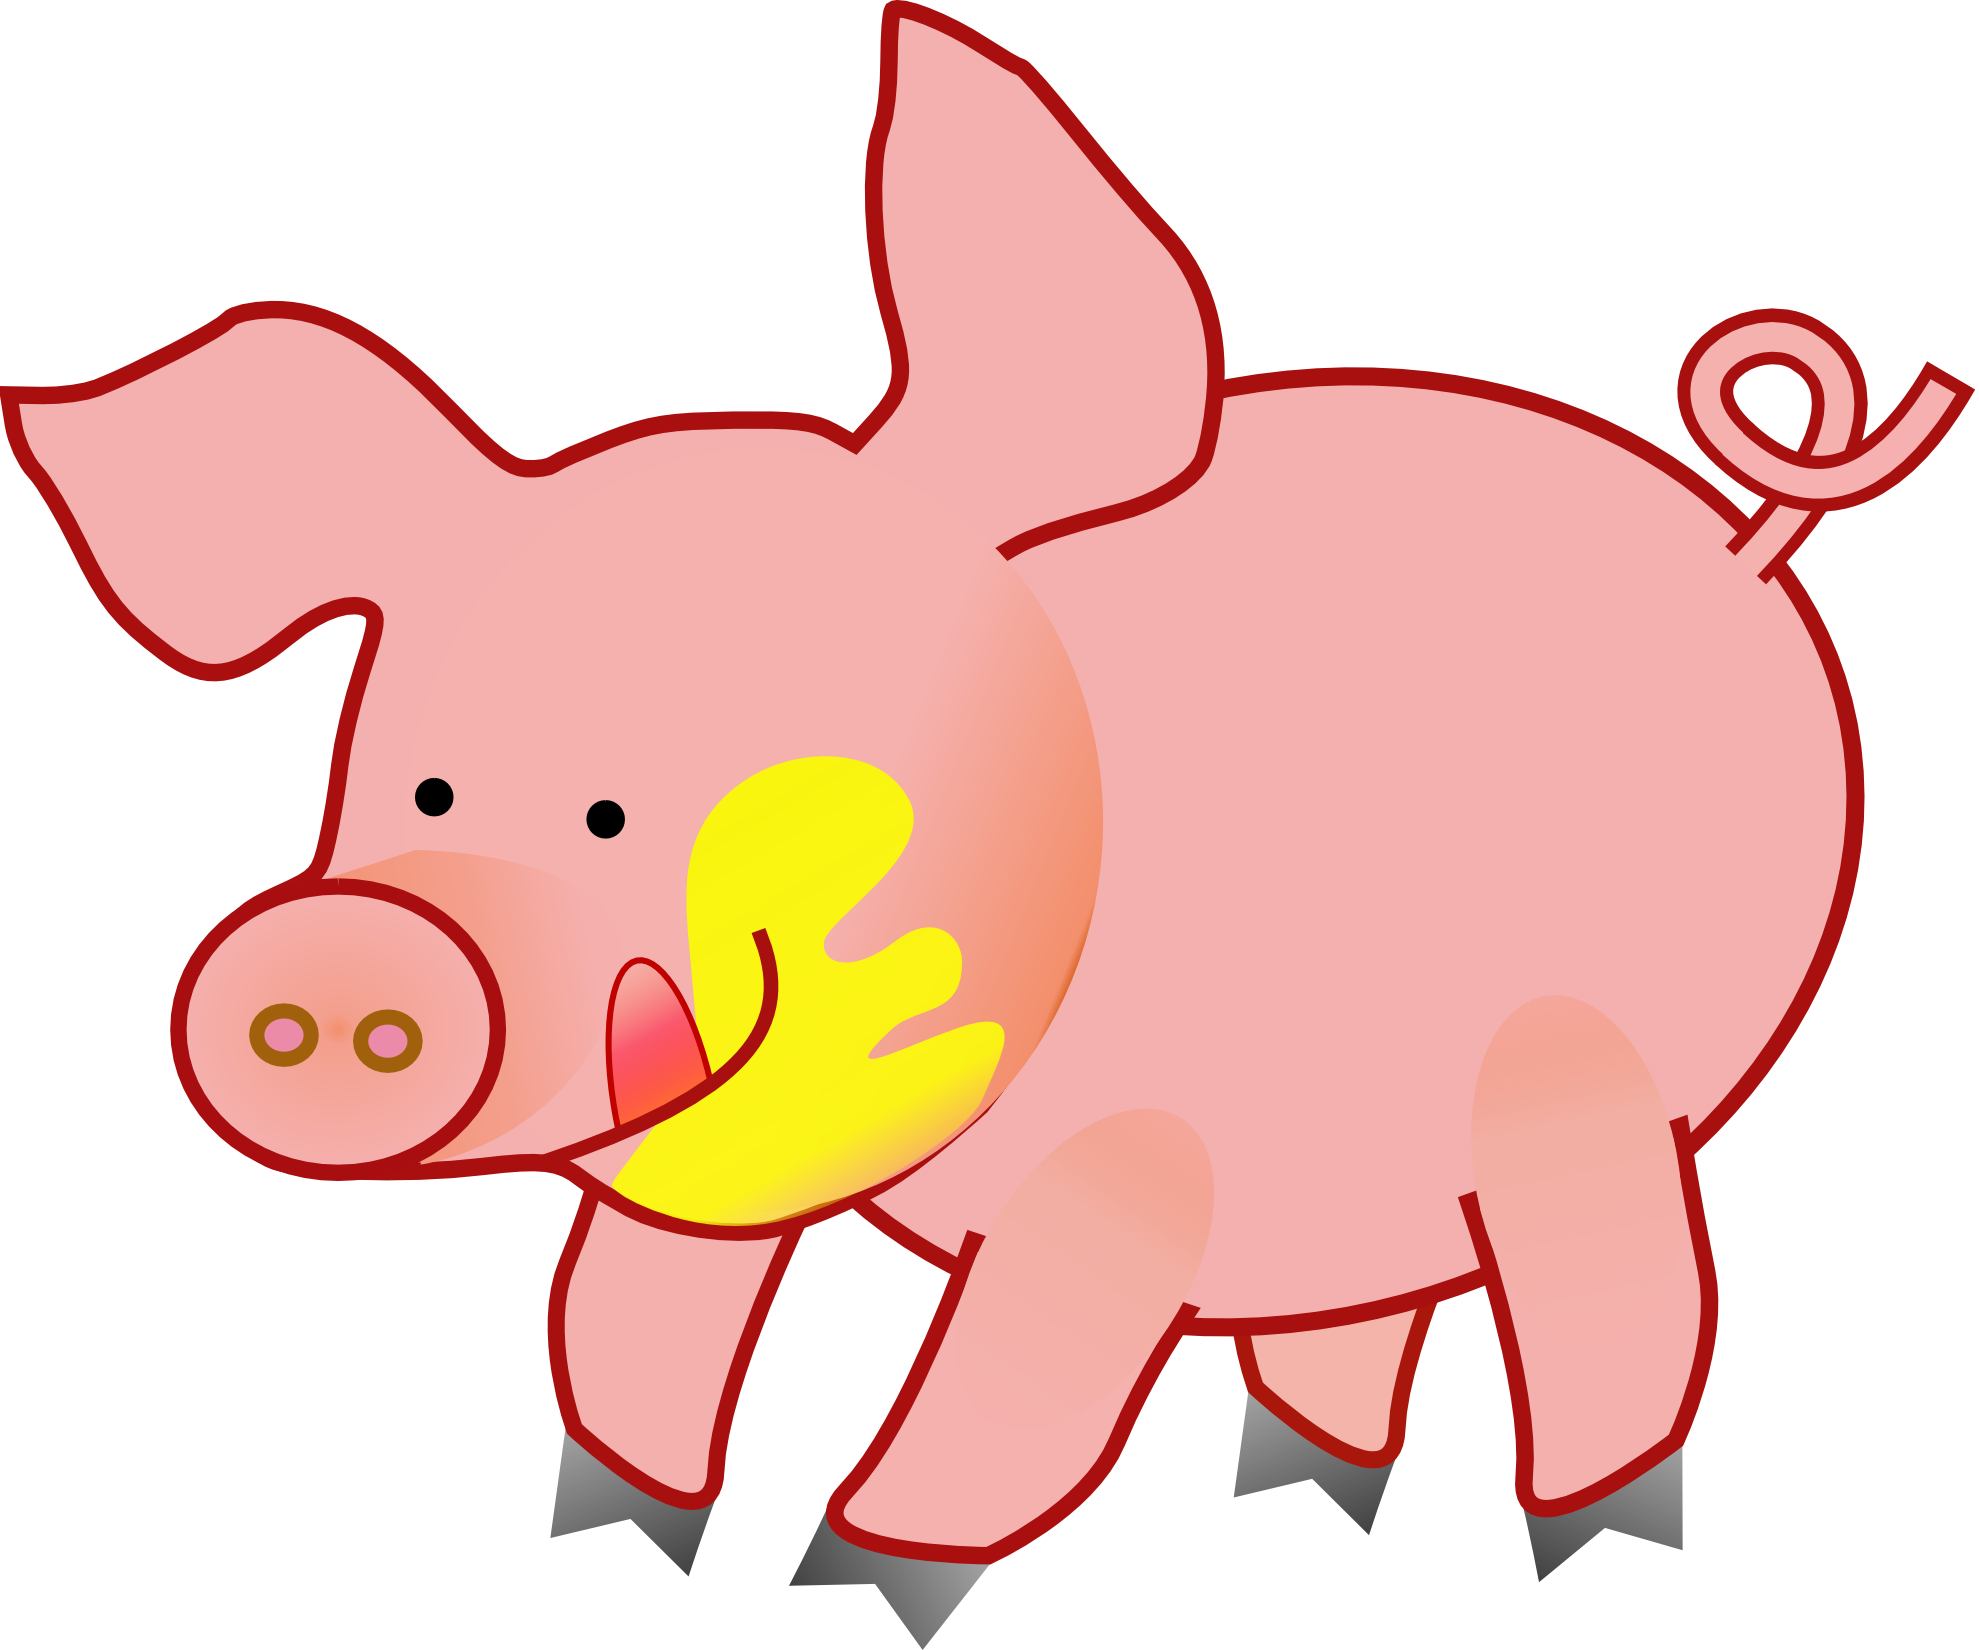 Pig 20clipart | Clipart Panda - Free Clipart Images